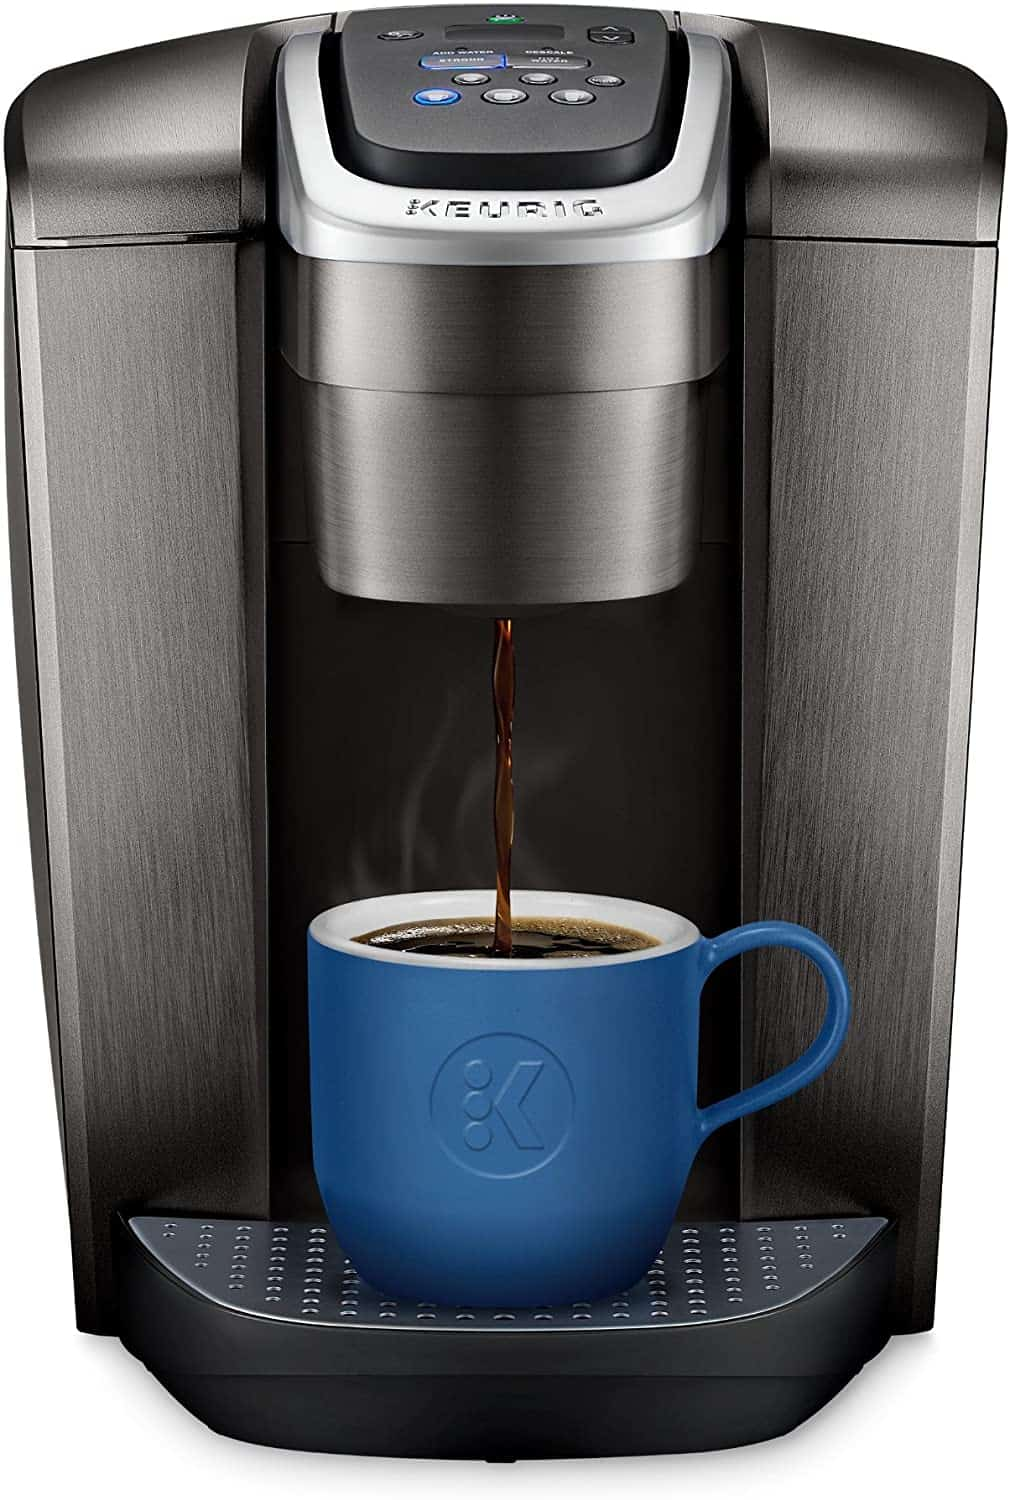 Keurig K-Elite Coffee Maker, Single Serve K-Cup Pod Coffee Brewer